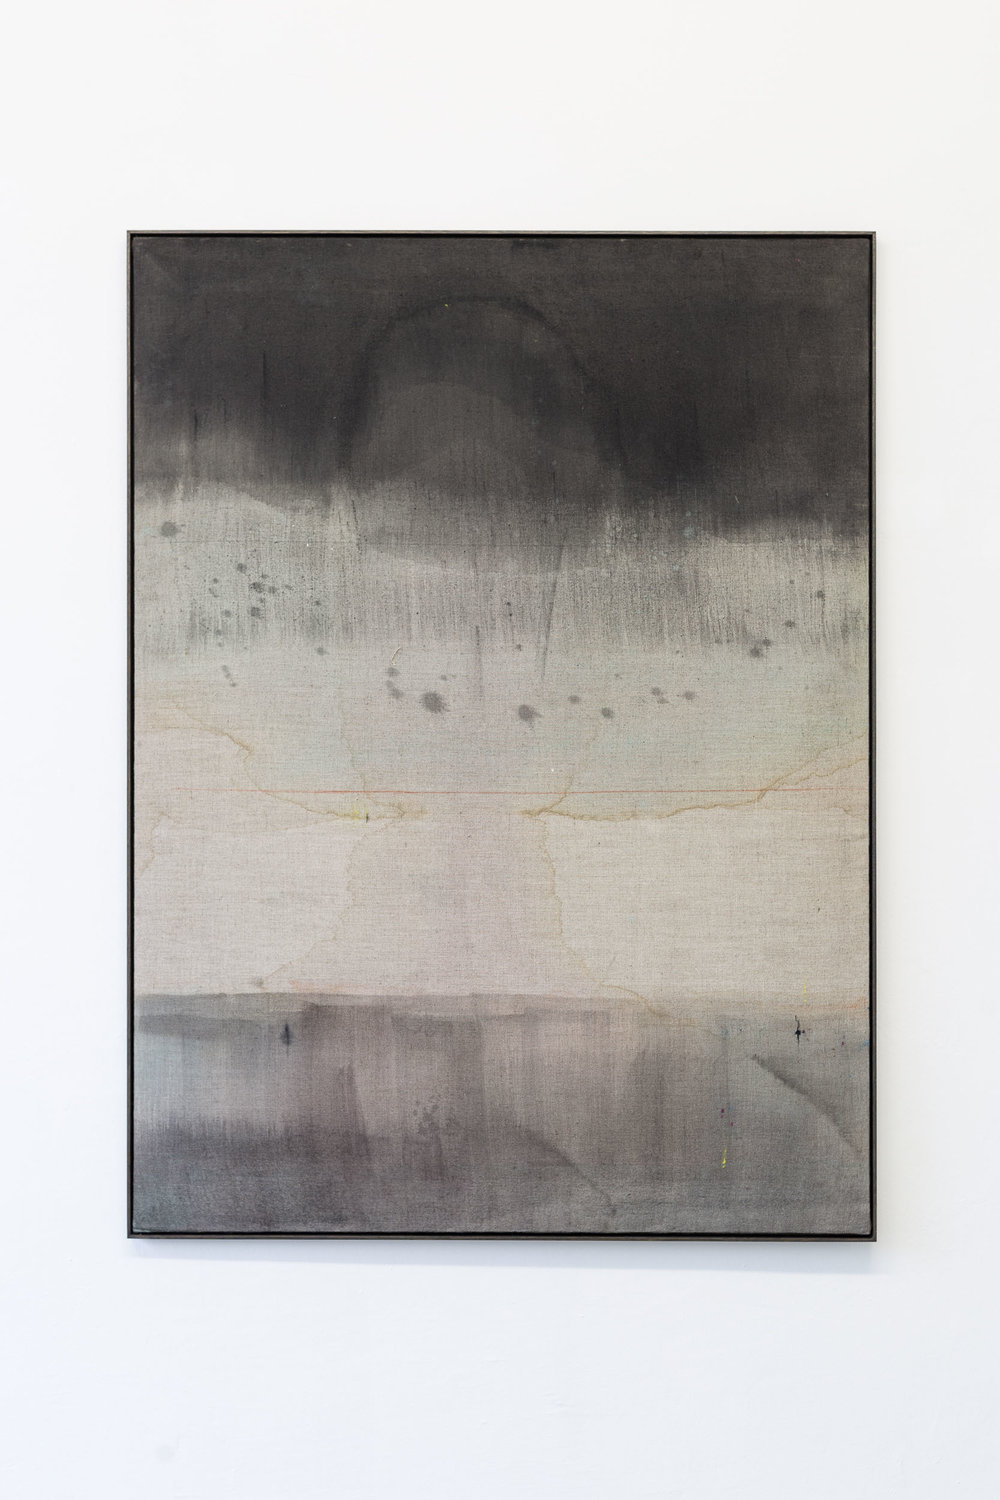 Kirstine Roepstorff,  Illustration # , 2017,   Watering:Pigment, cloth, linen  ,   102 x 137.5 cm   Photo: Kilian Bannwart